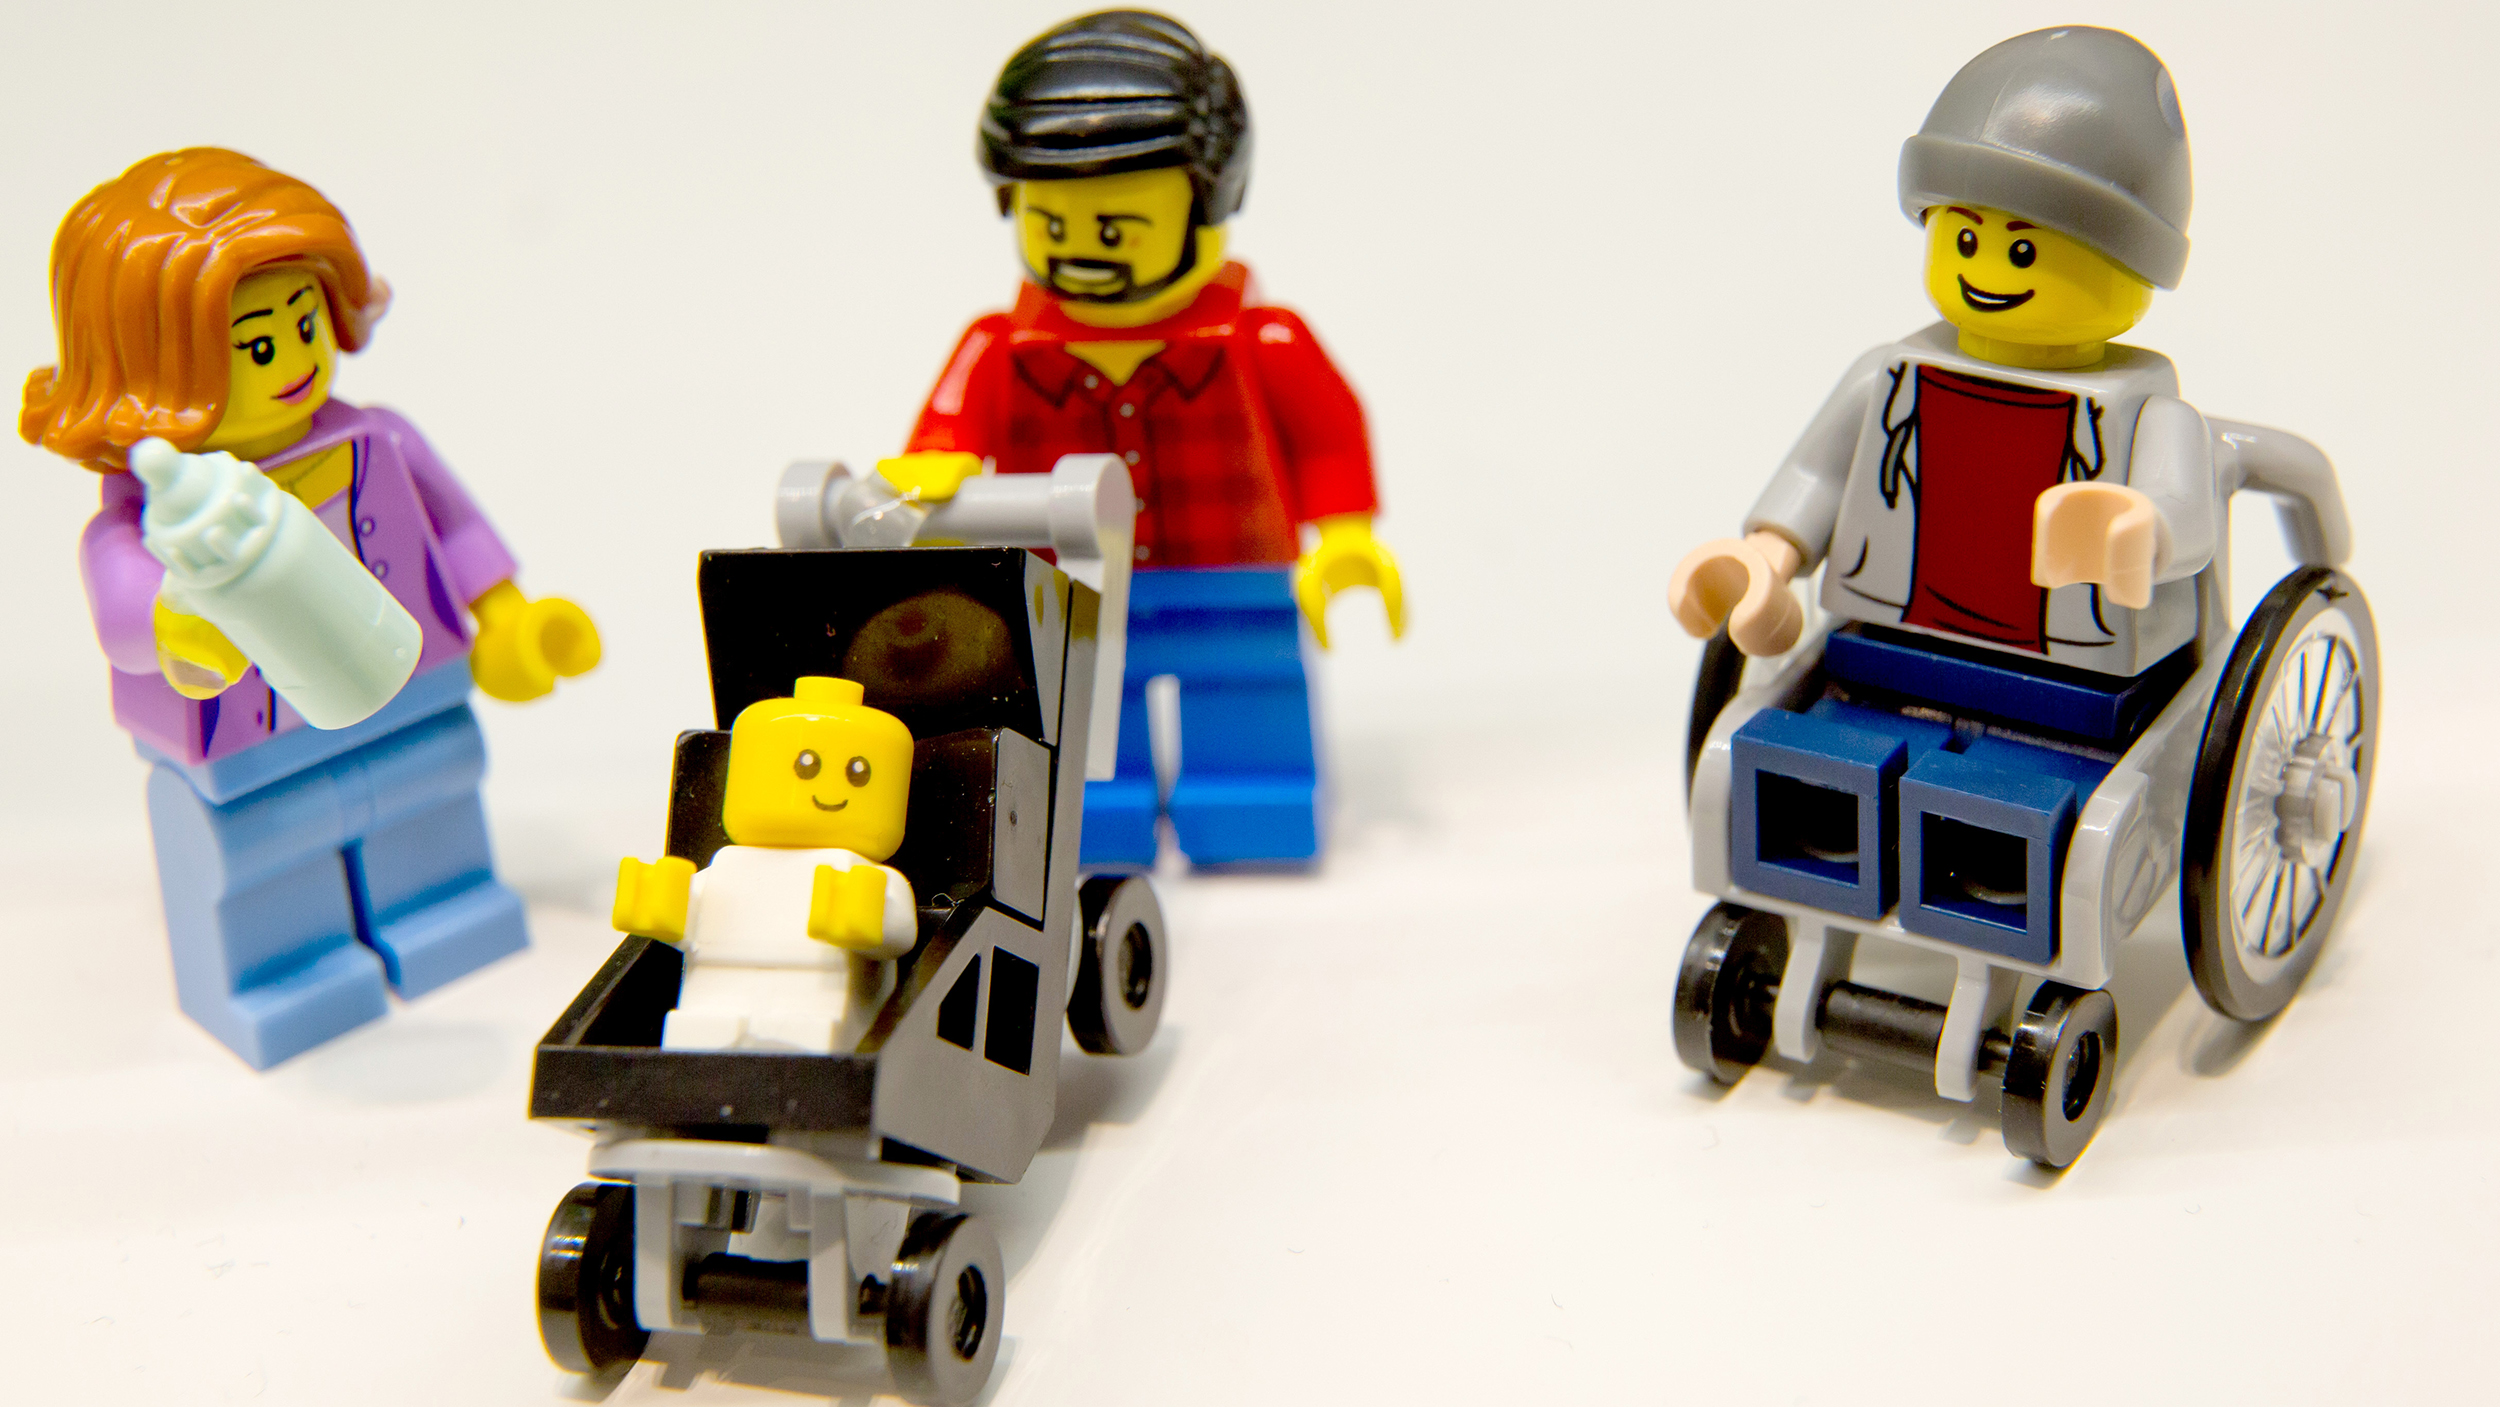 New Lego set features stay-at-home dad and working mom